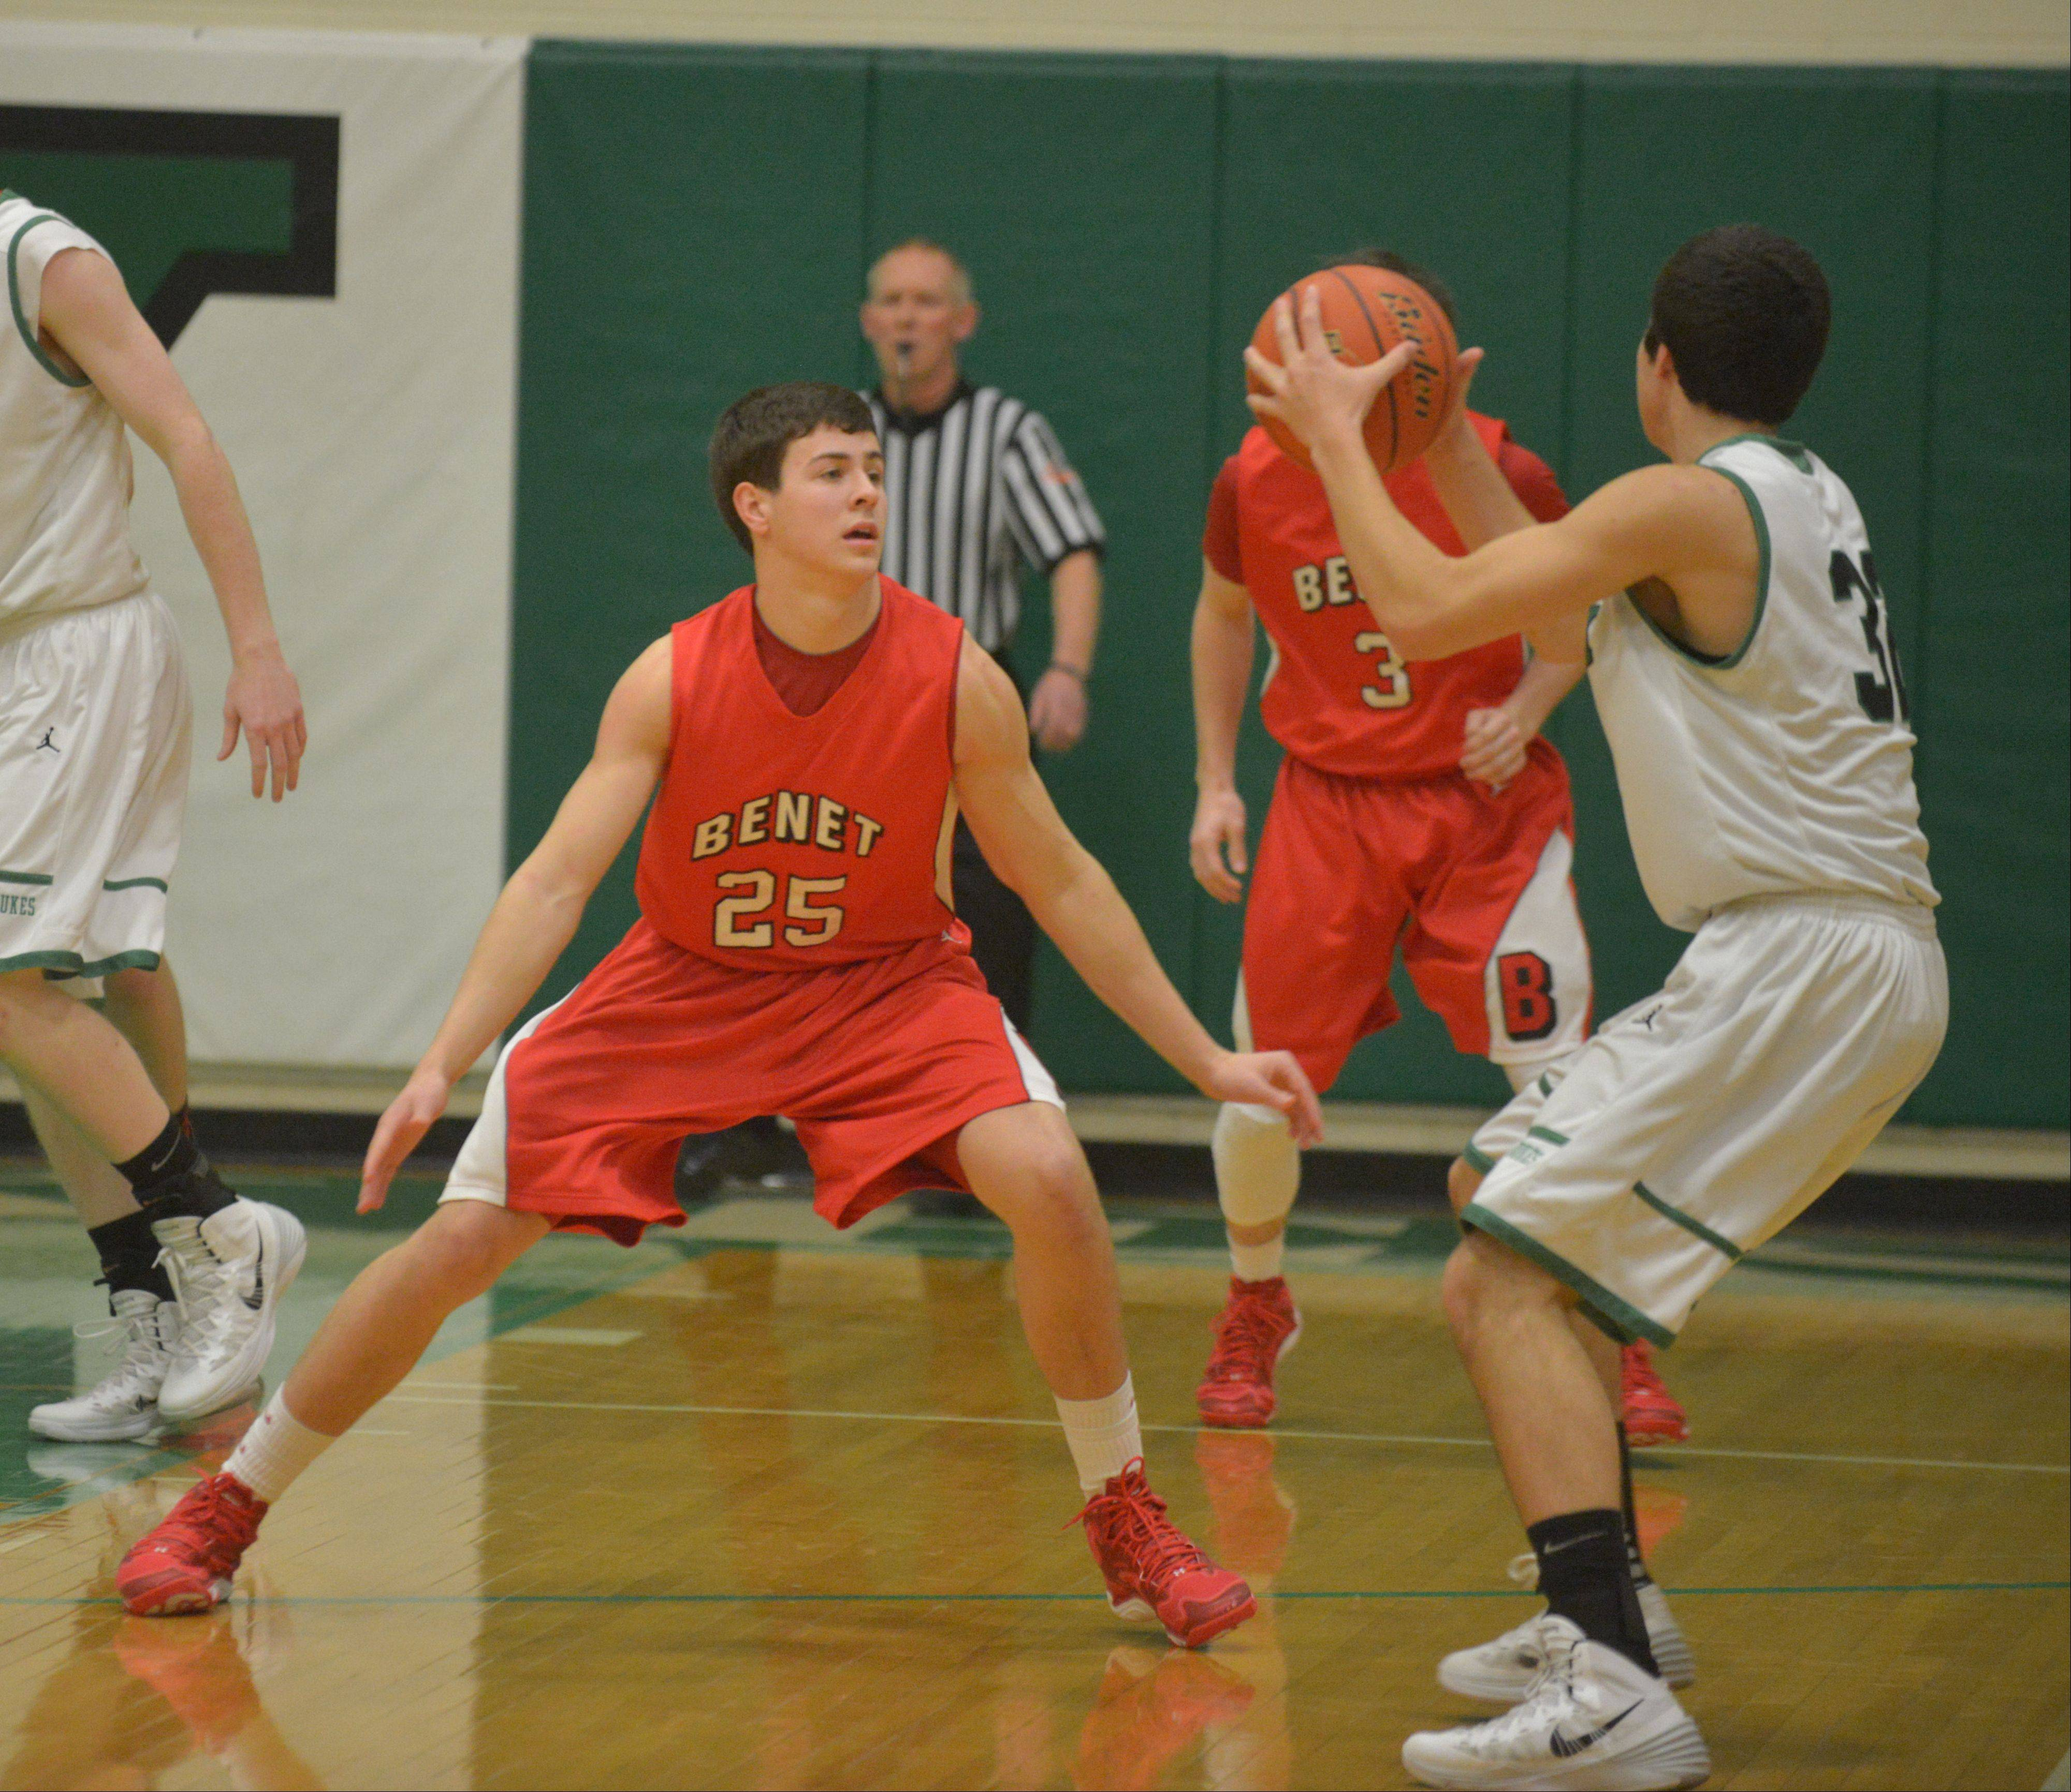 Benet will meet state power Stevenson on Saturday night at the Batavia Night of Hoops.